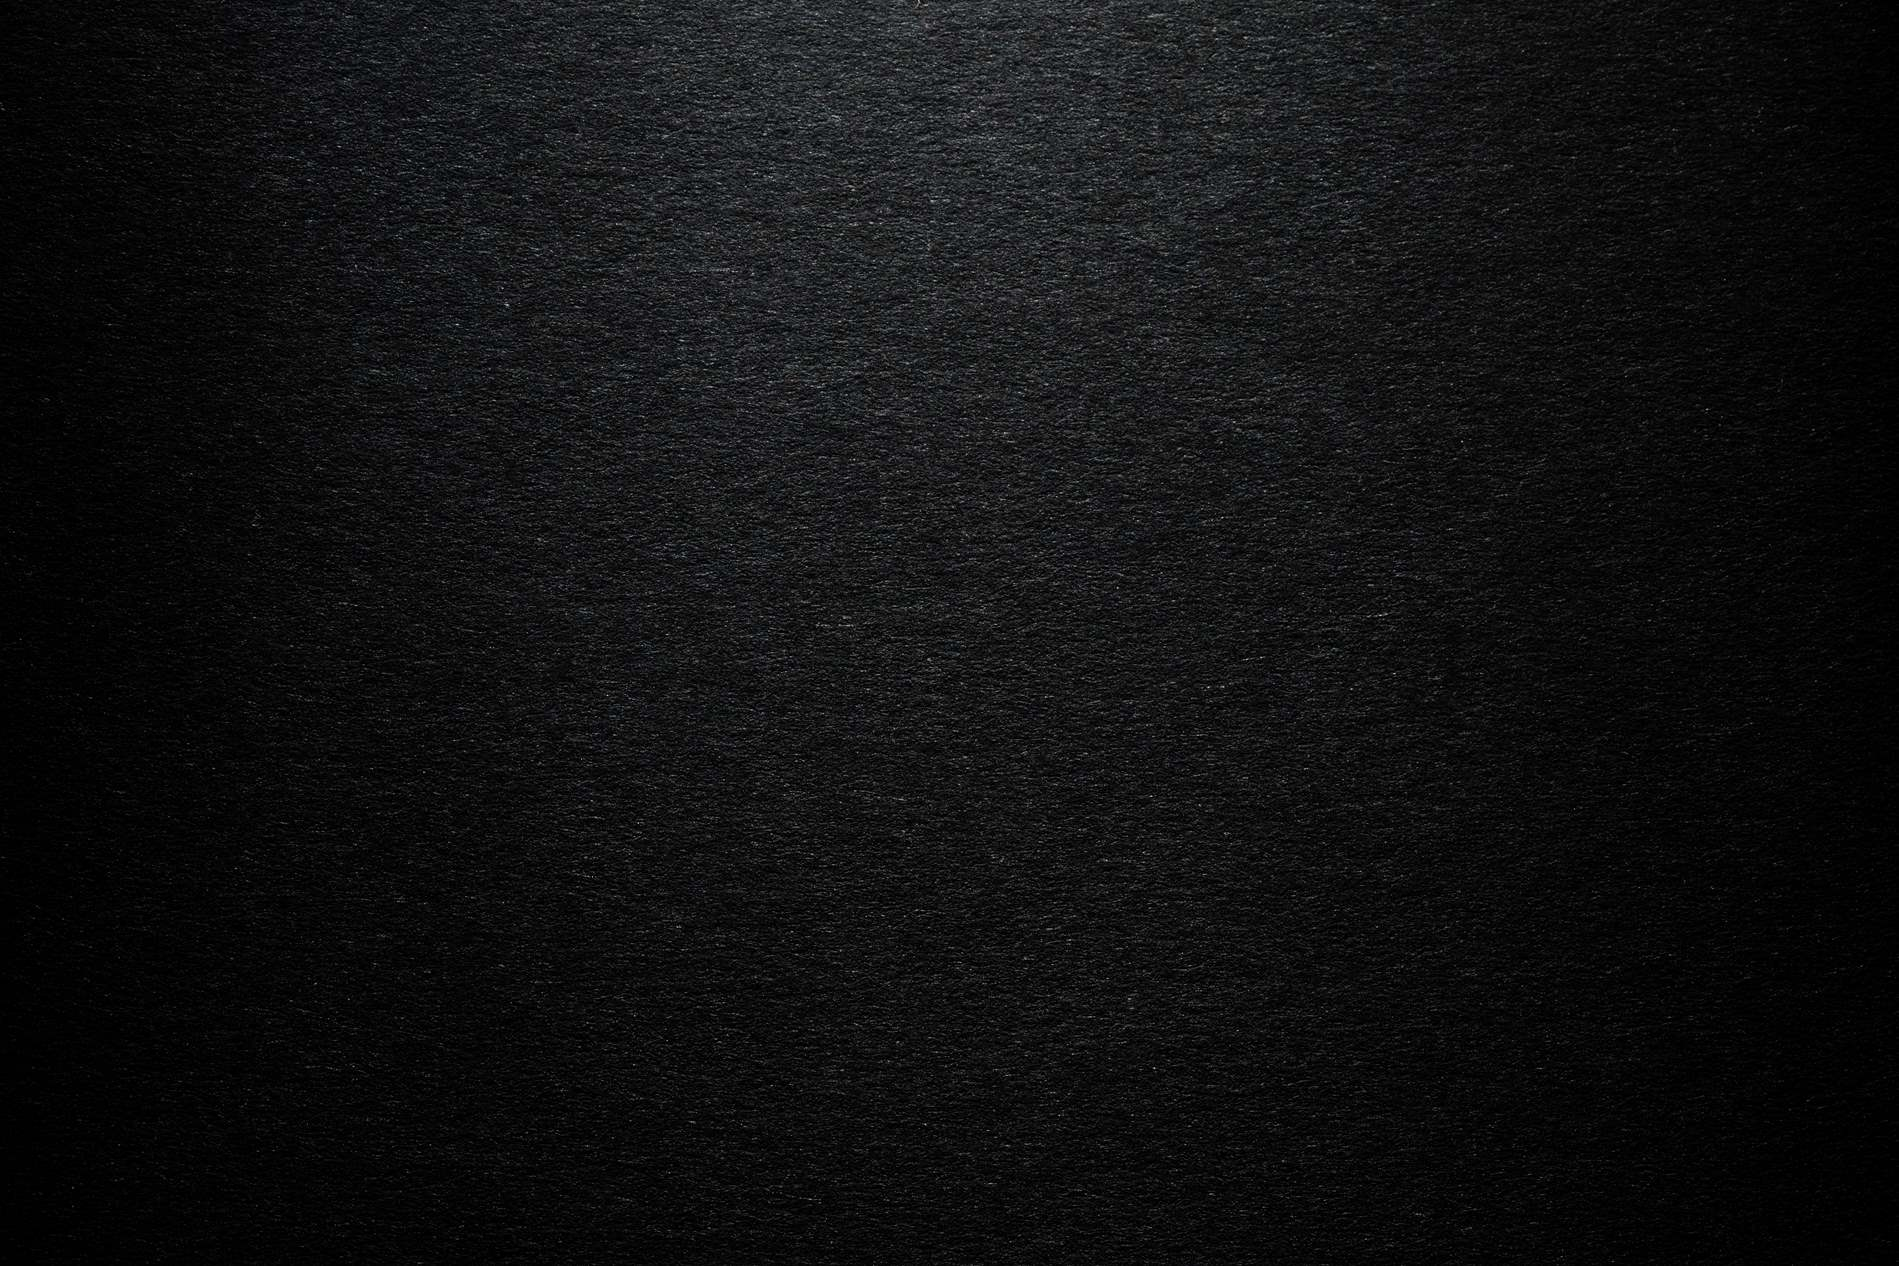 black wall texture. Clean Black Paper Texture Background Wall